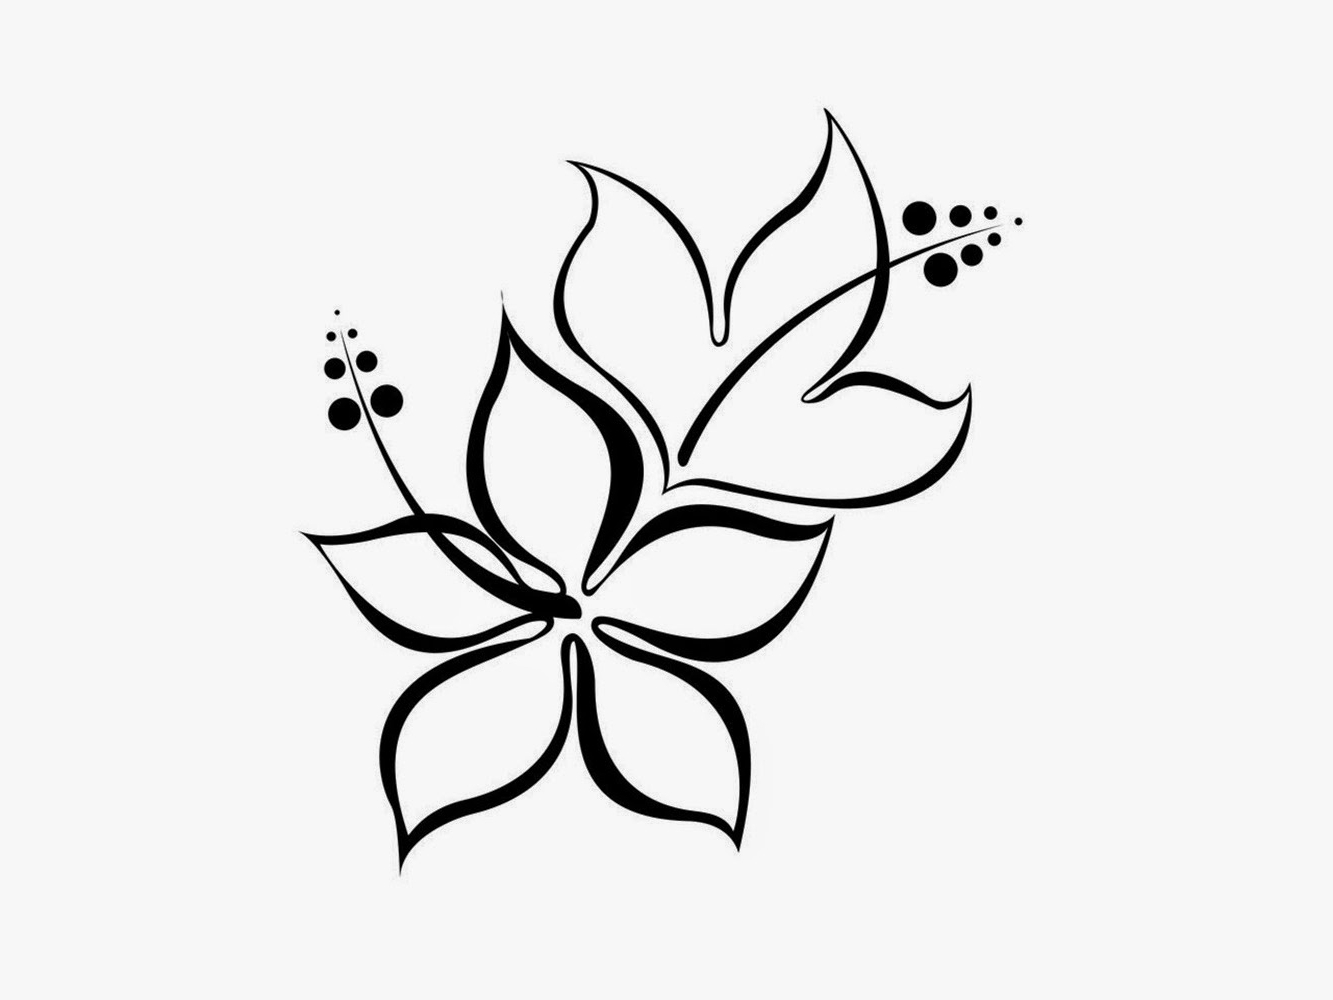 Black And White Line Drawing Flower : Hand drawn flower vectors free vector art at vecteezy